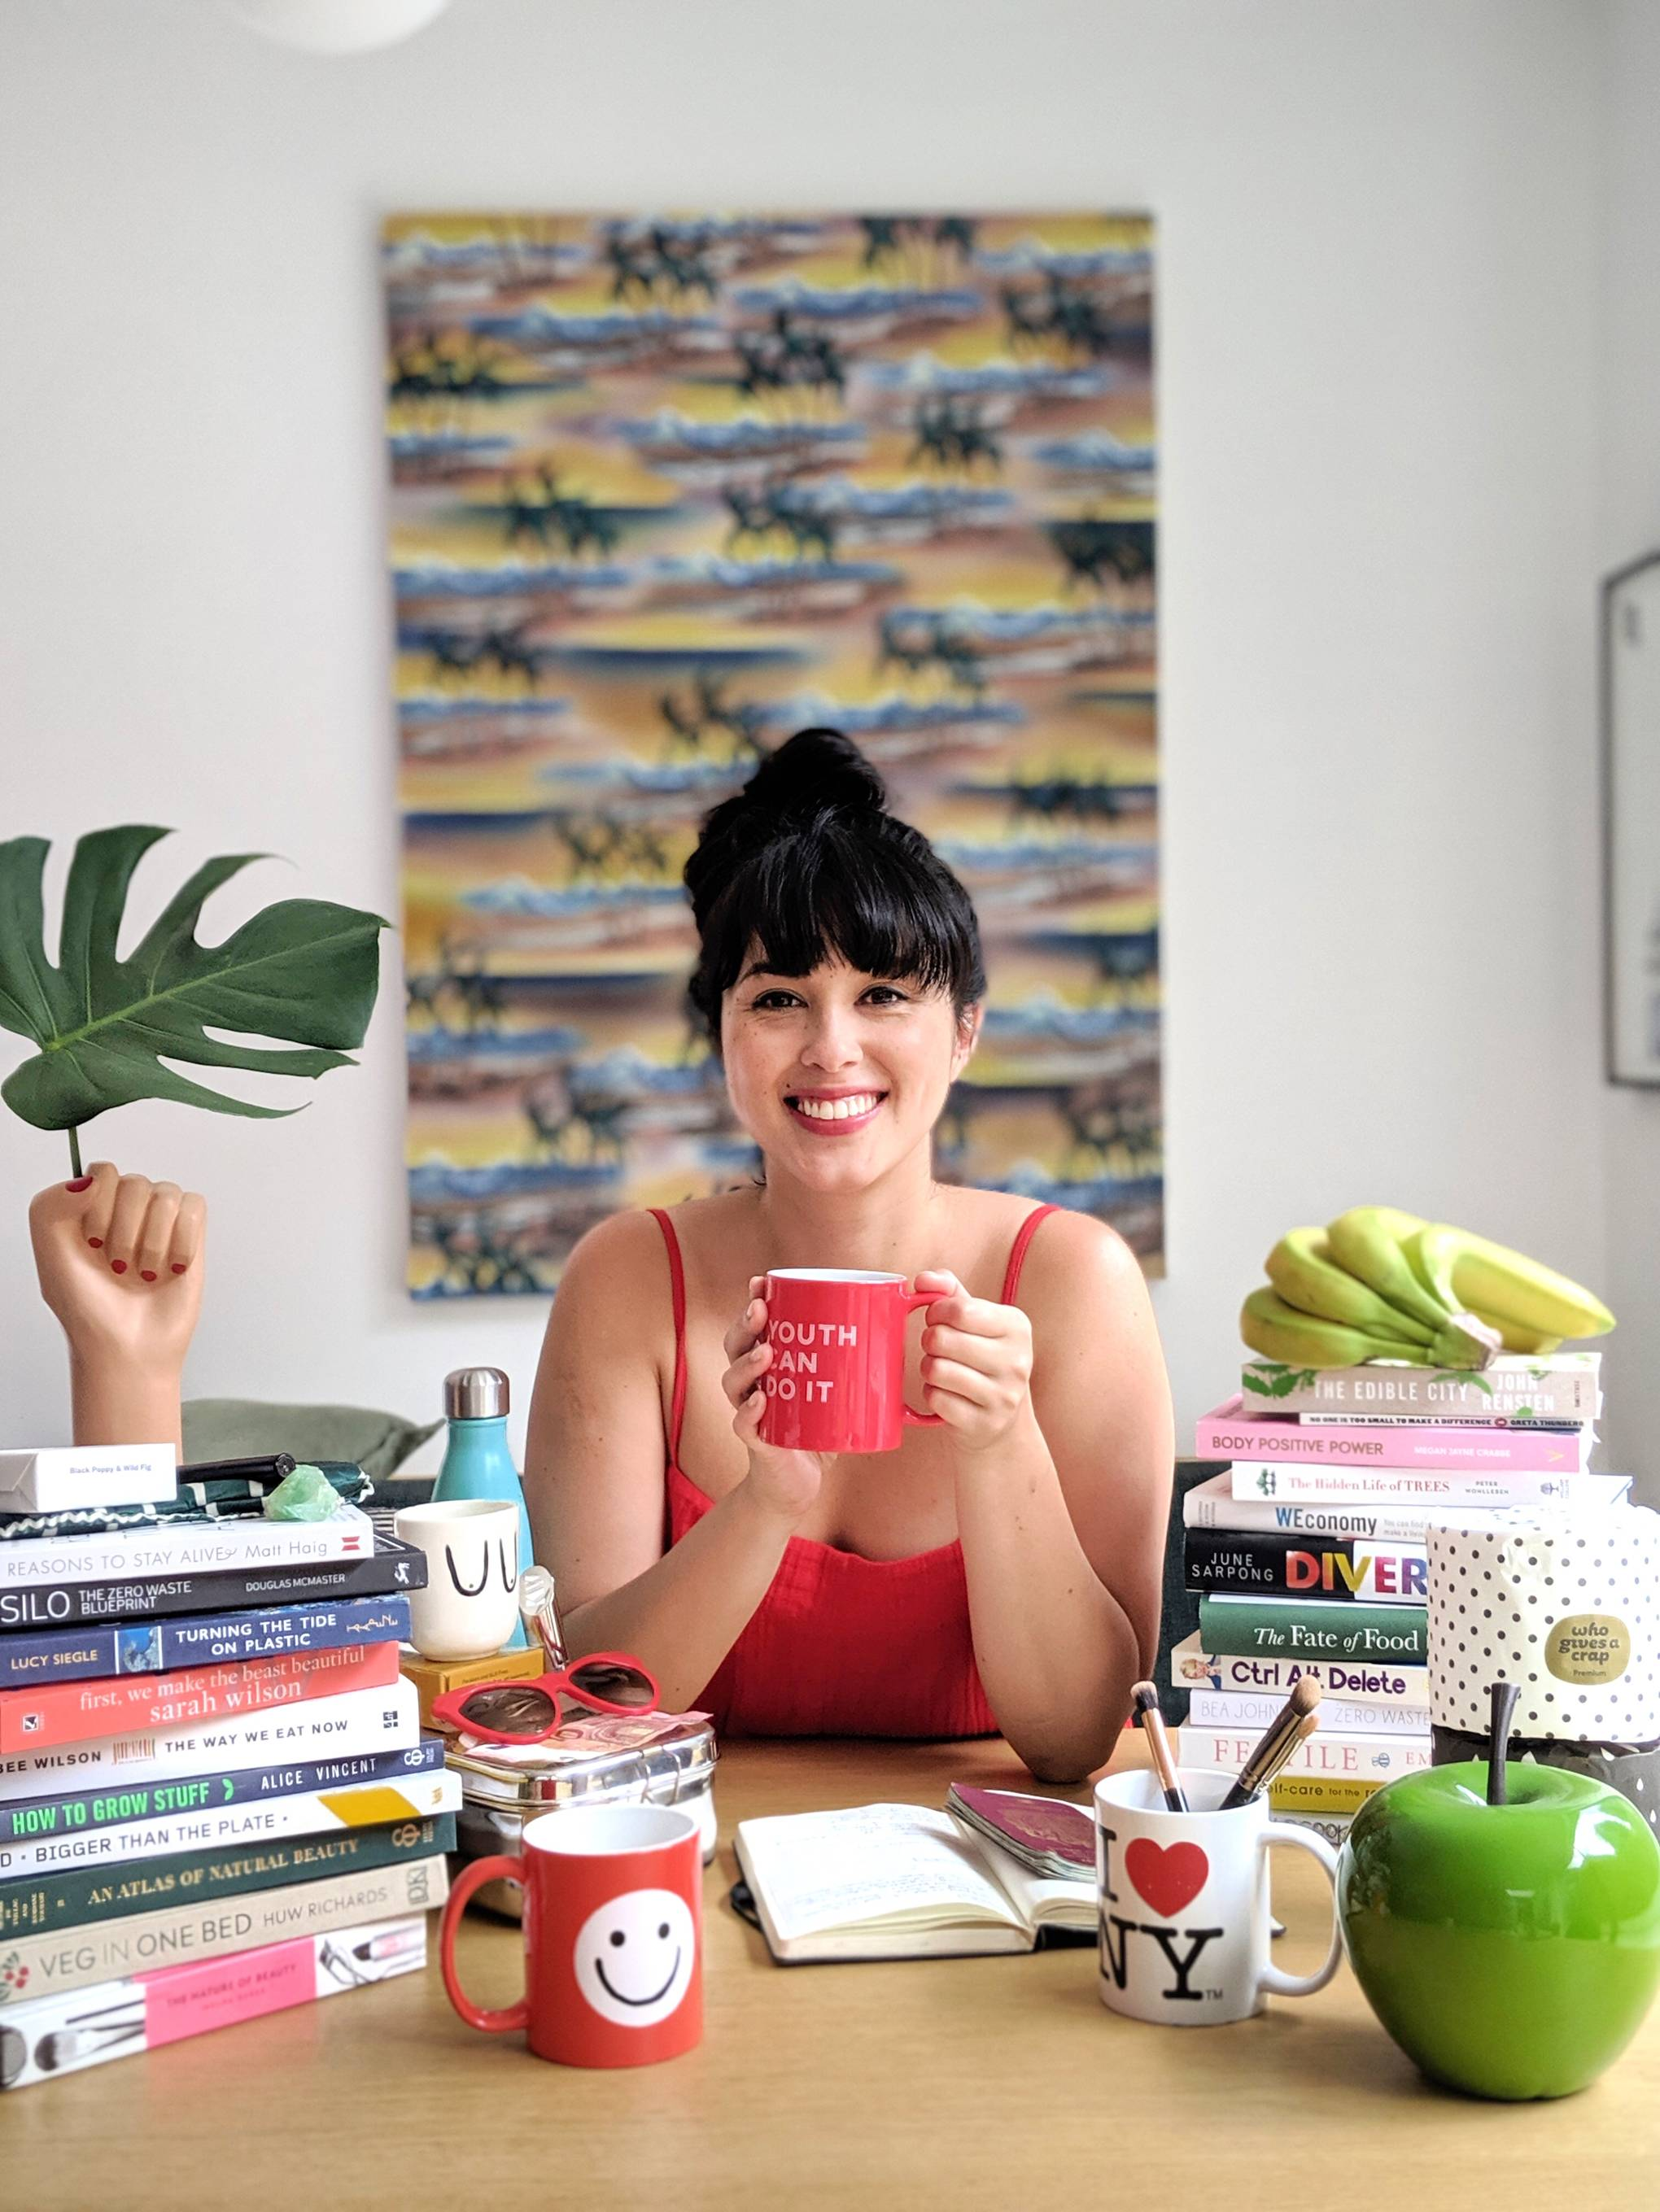 Melissa Hemsley is embarking on a series of discussions exploring sustainable living